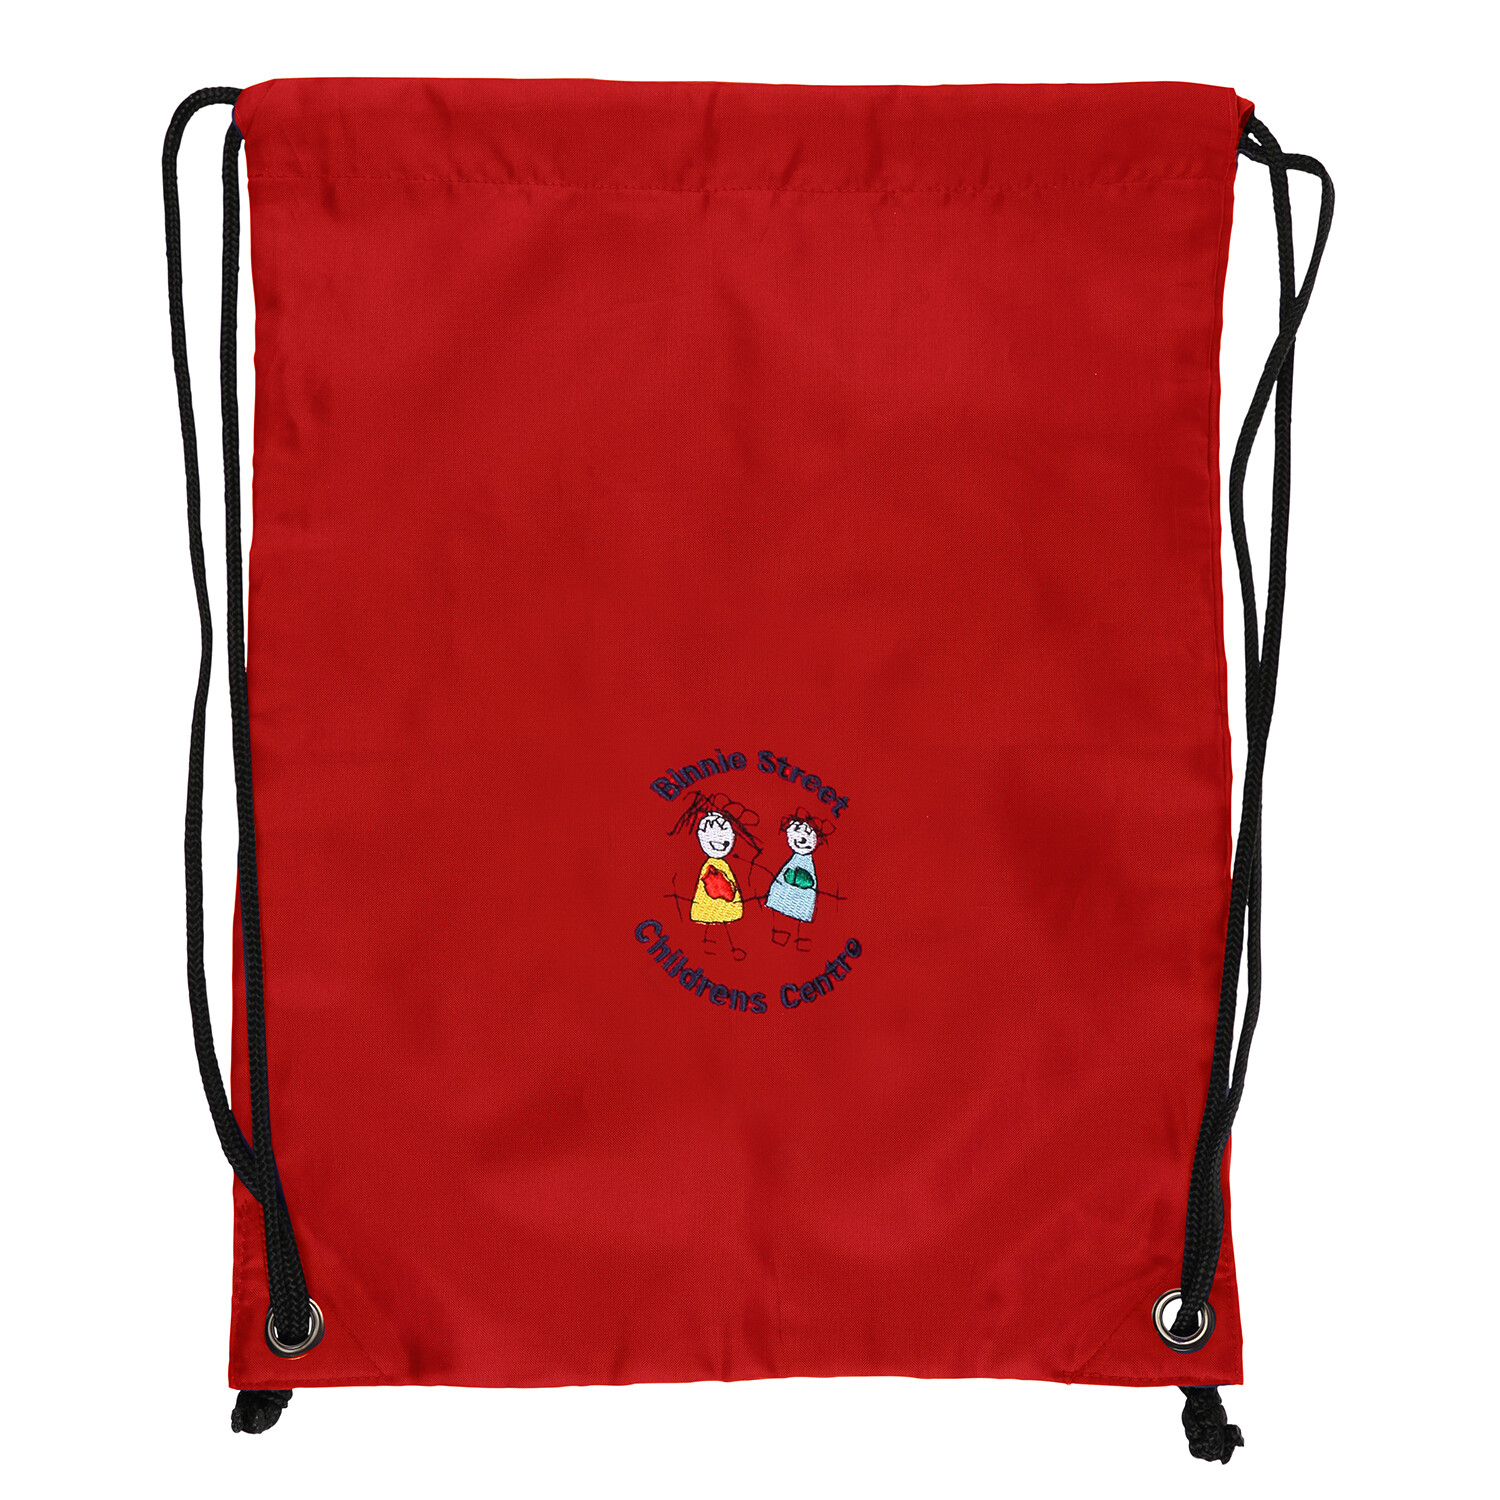 Binnie Street Nursery Gym Bag